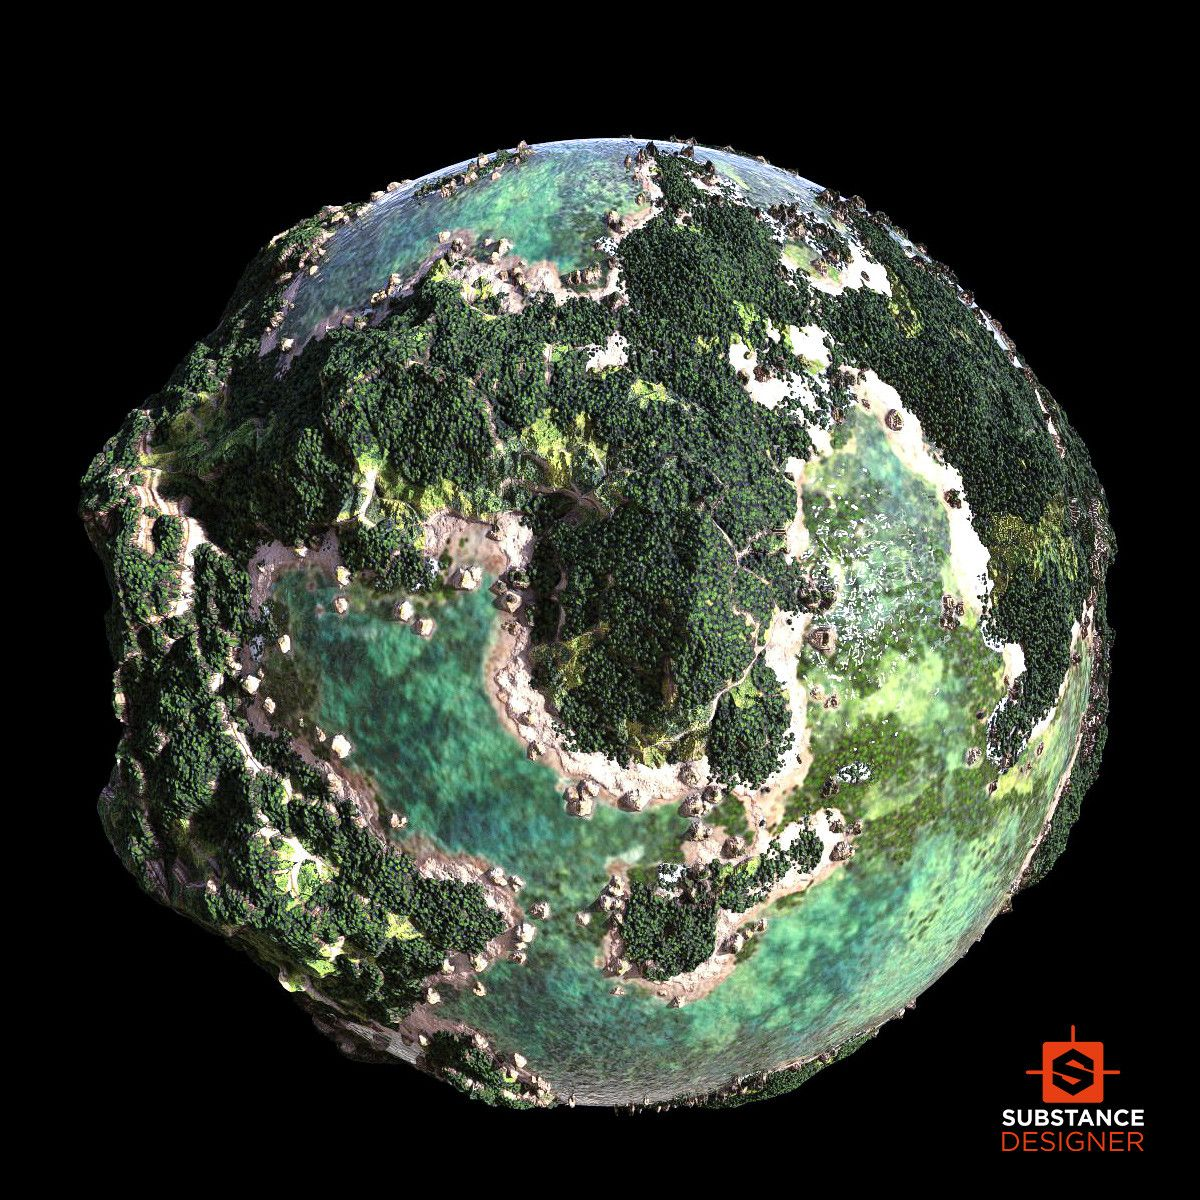 Pirate Island Material 100 SubstanceDesigner, by